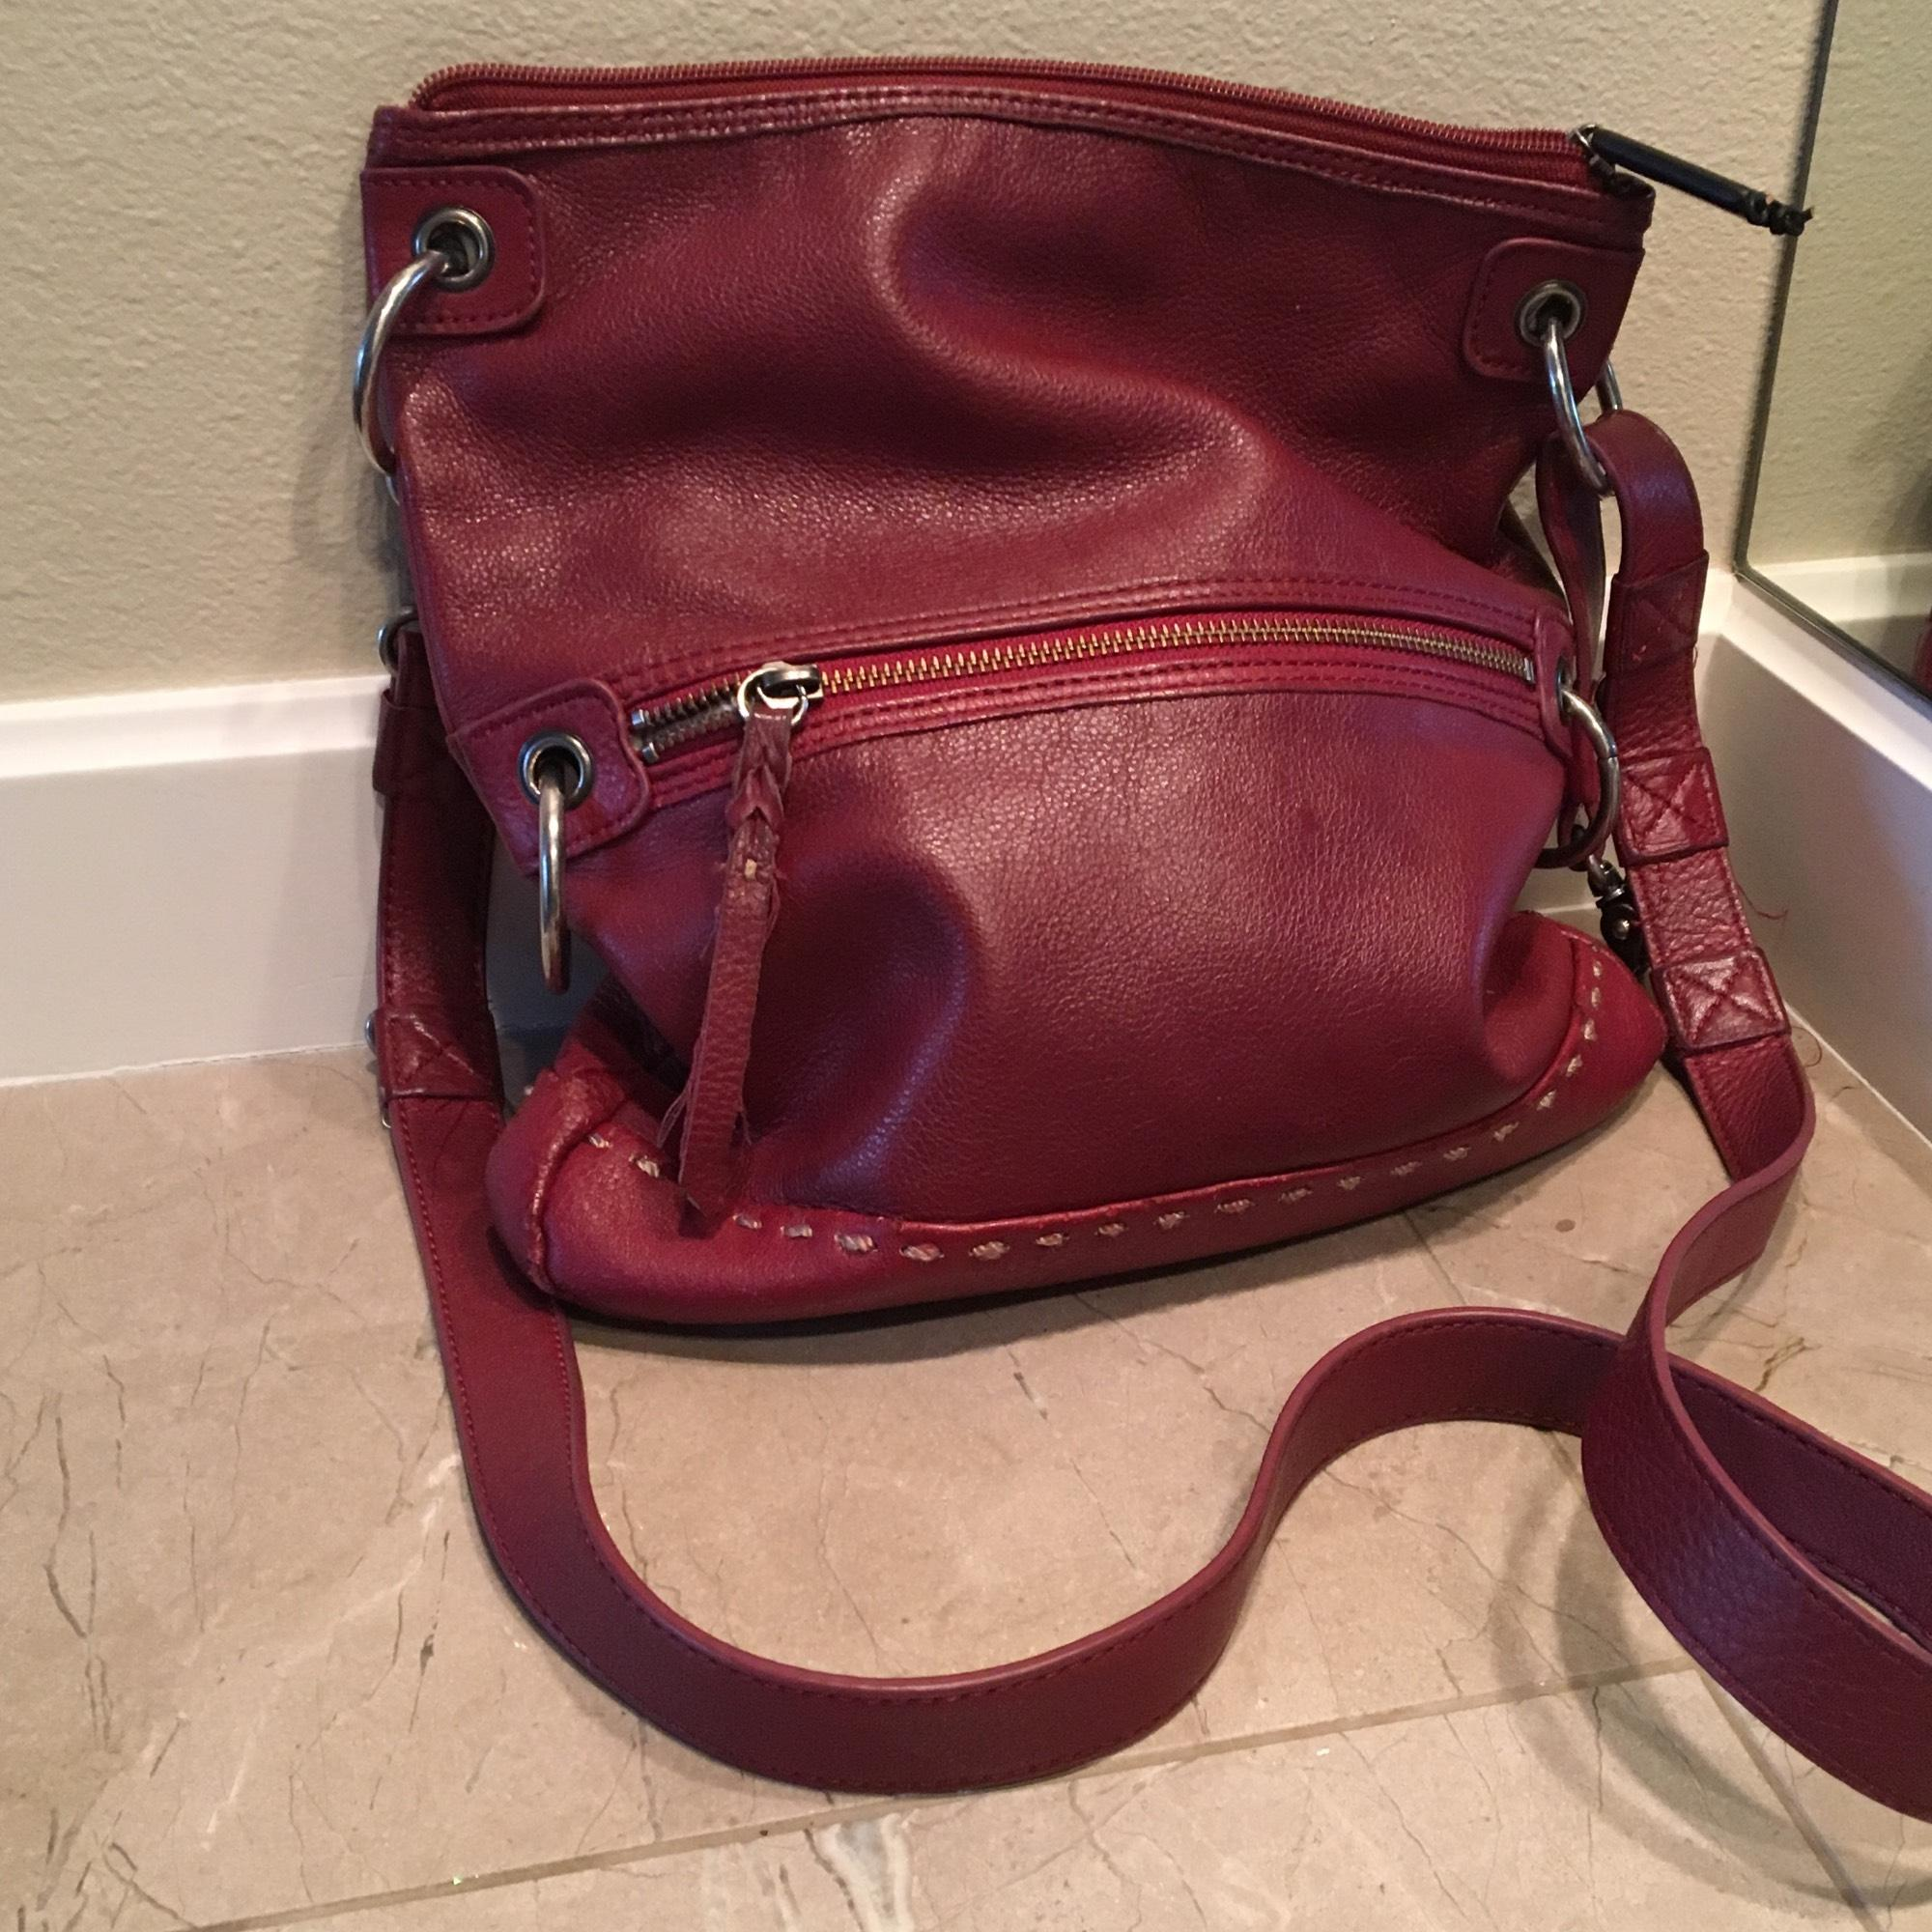 Clarks Leather Convertible Tote Clutch Red Cross Body Bag 80%OFF ... c38d32f74c716